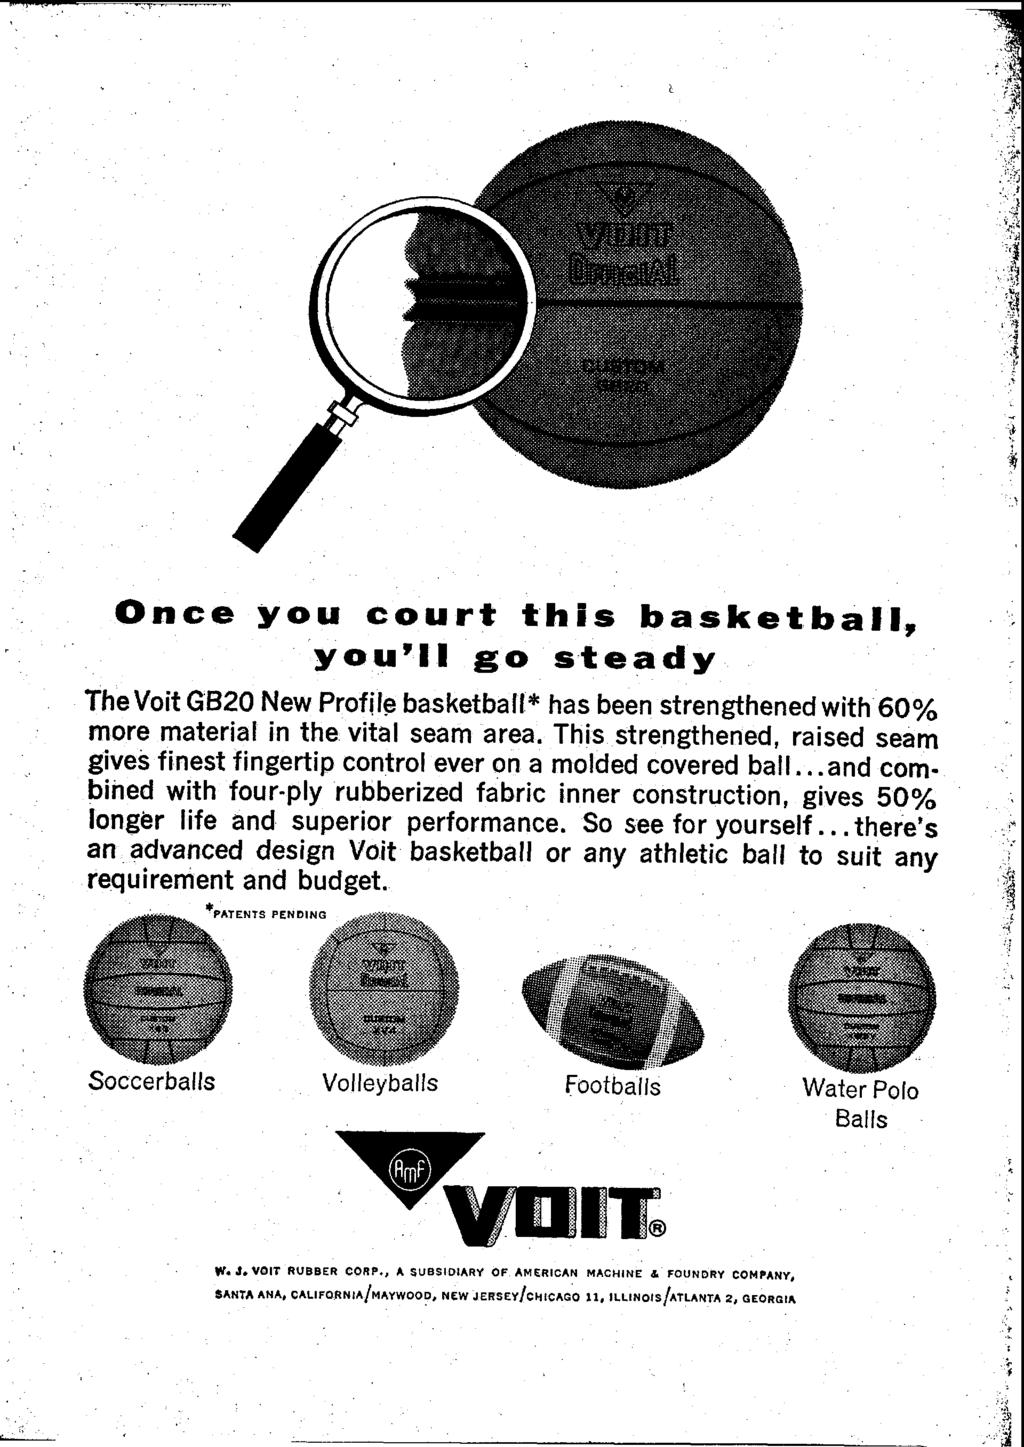 Once you court this basketball, you'll go steady TheVoit GB20 New Profile basketball* has been strengthened with 60% more material in the vital seam area.